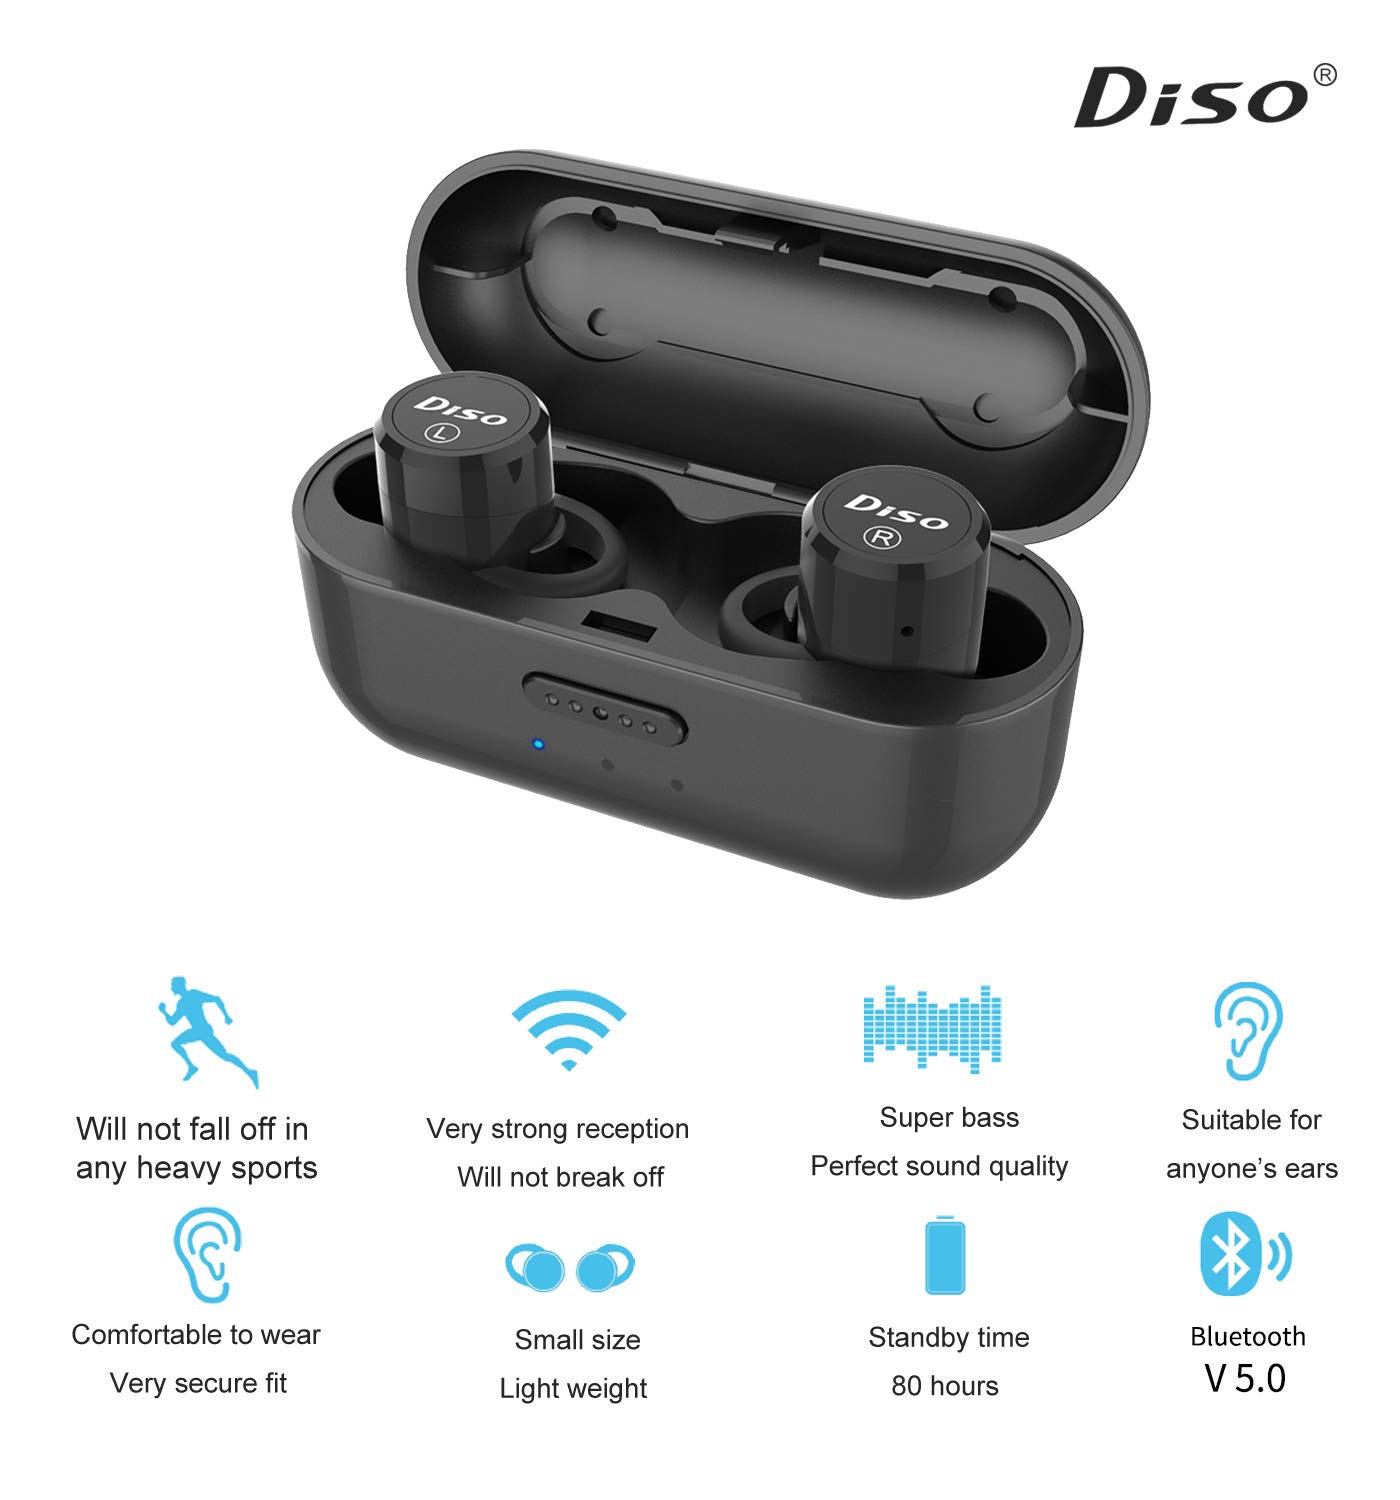 True Wireless Earbuds Mini Wireless Bluetooth Headphones with IPX5 Waterproof Charging Case Built-in Microphone Easy-Pair Deep Bass for Running Sport and Bluetooth V5.0